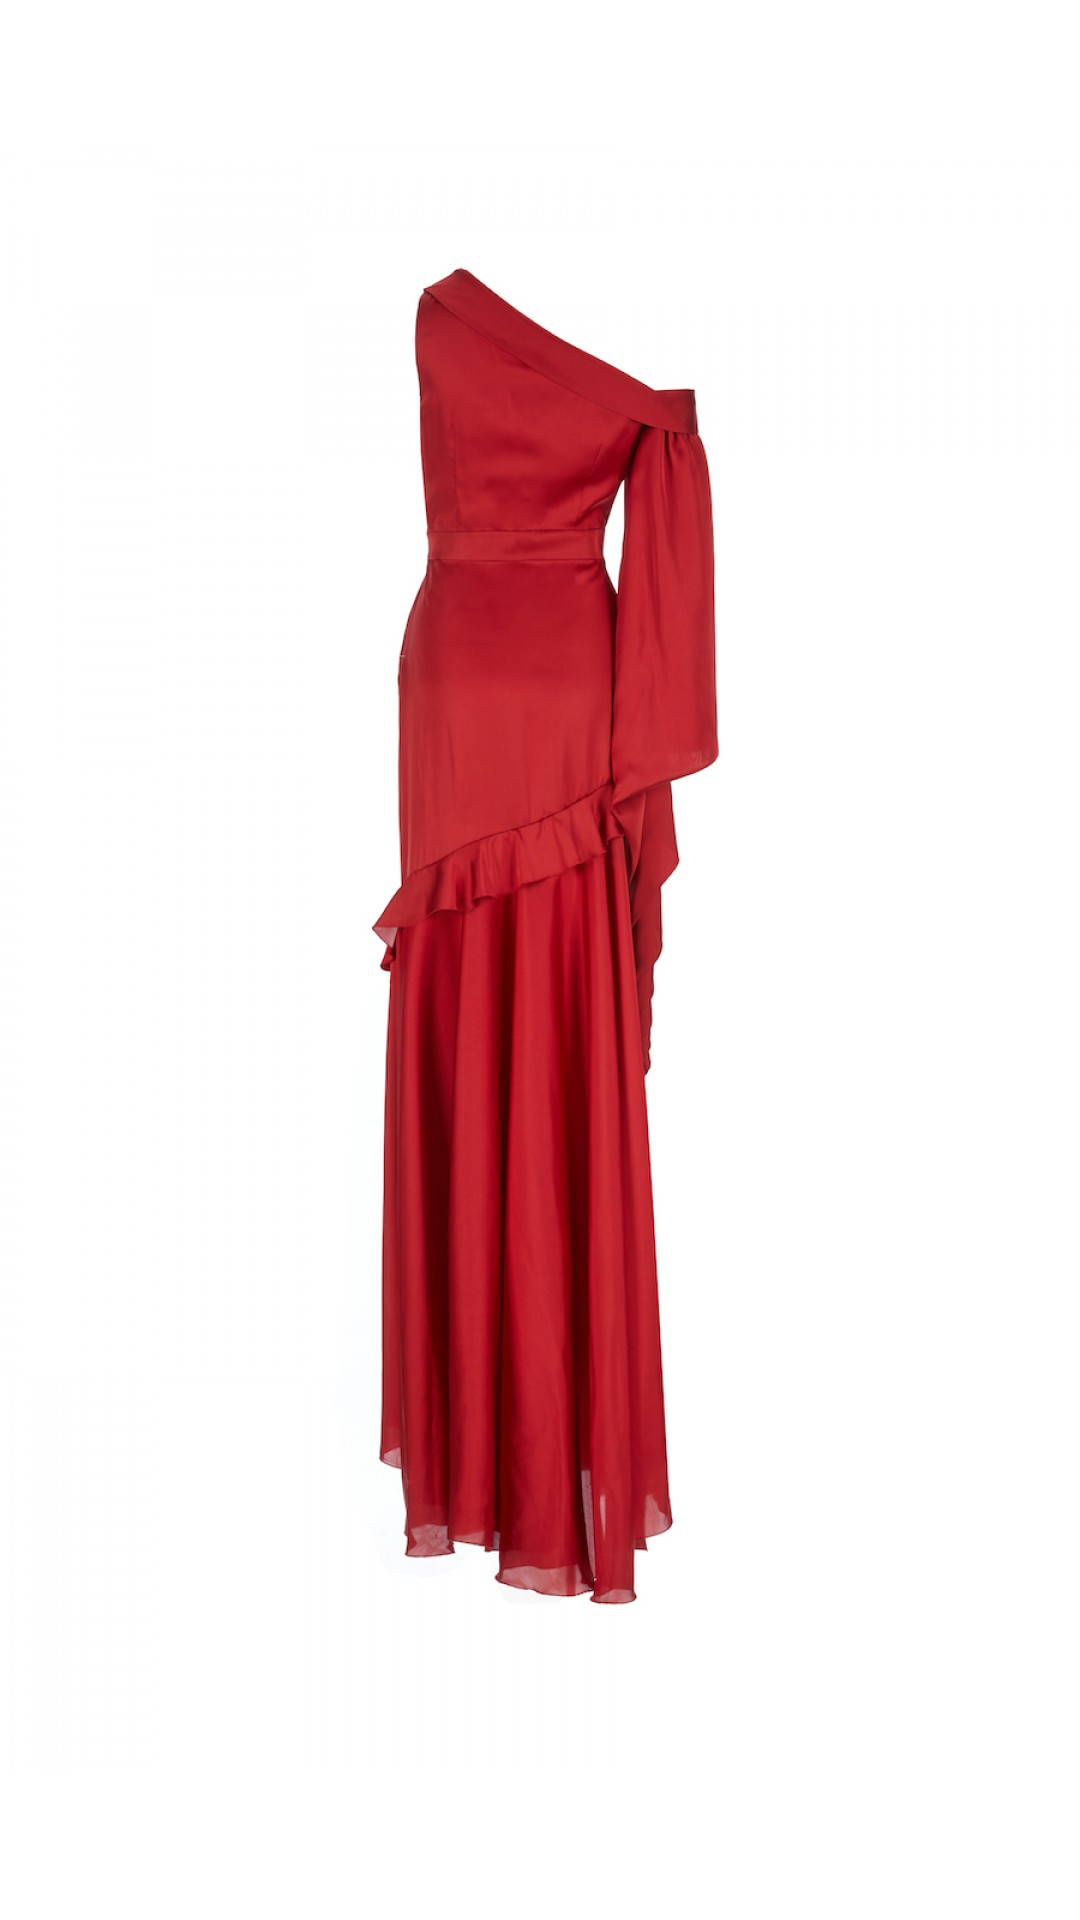 RED LONG DRESS WITH ONE ARM DETAIL